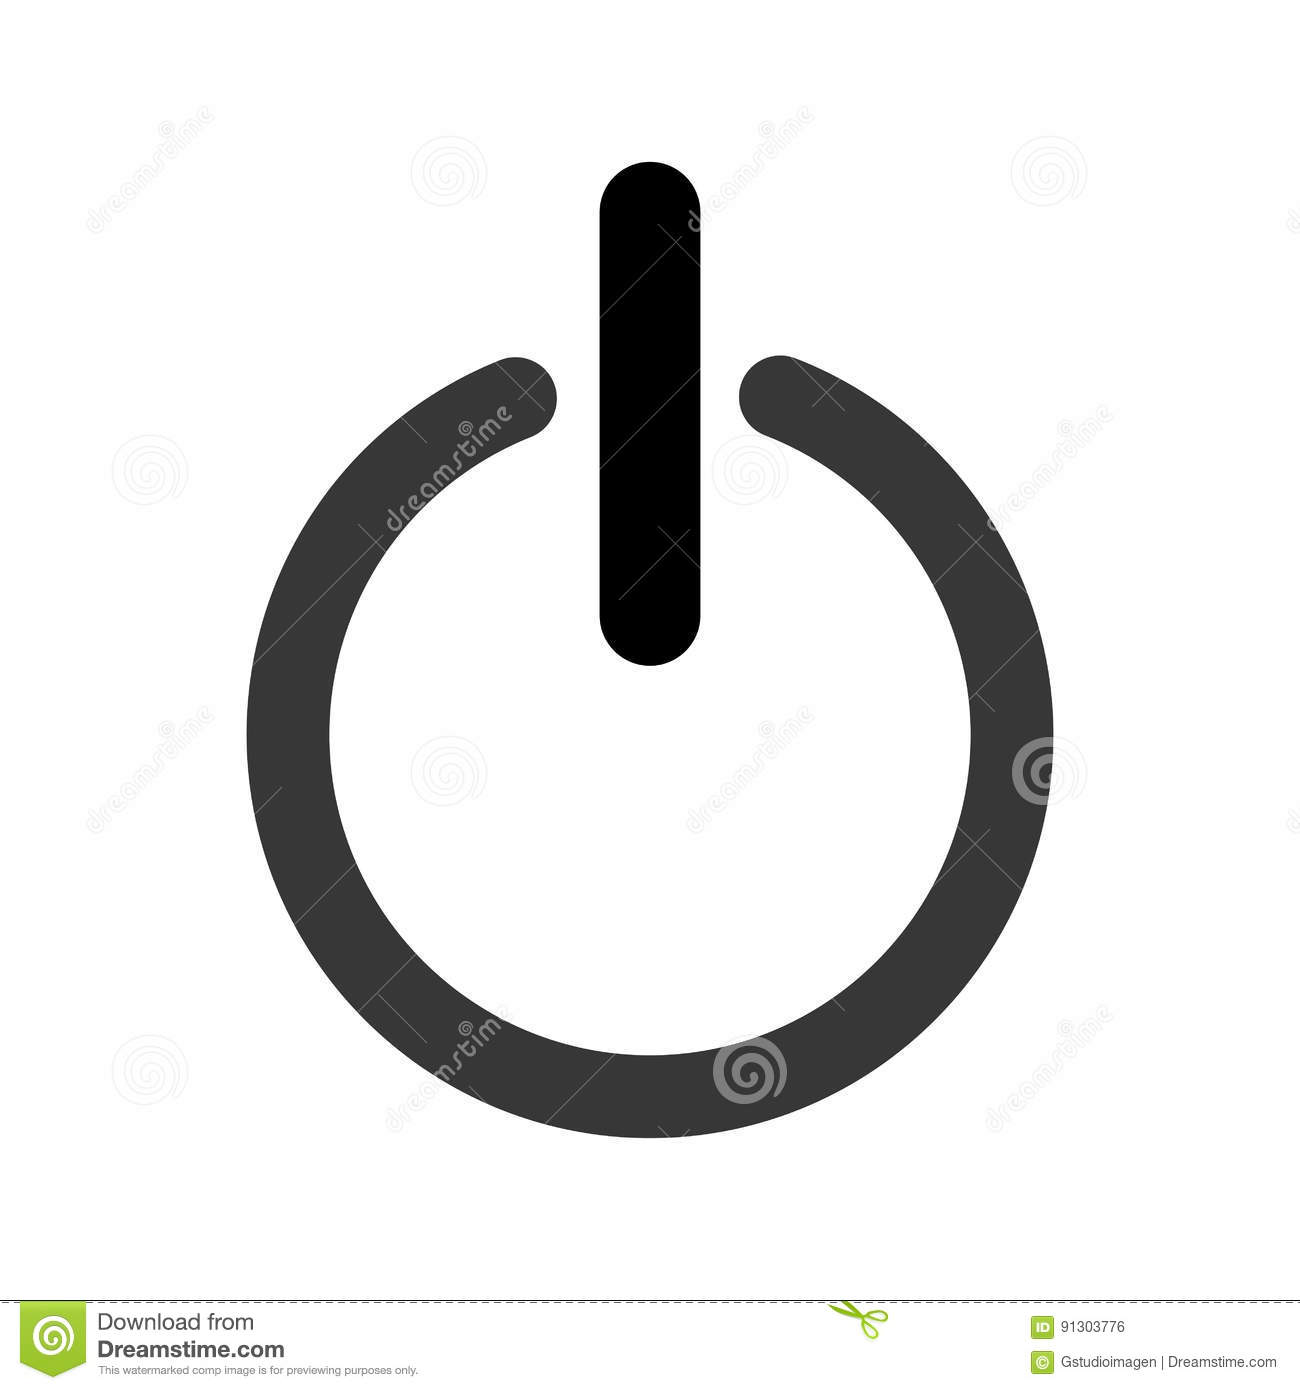 Power On And Off Button Stock Vector Illustration Of Illustration